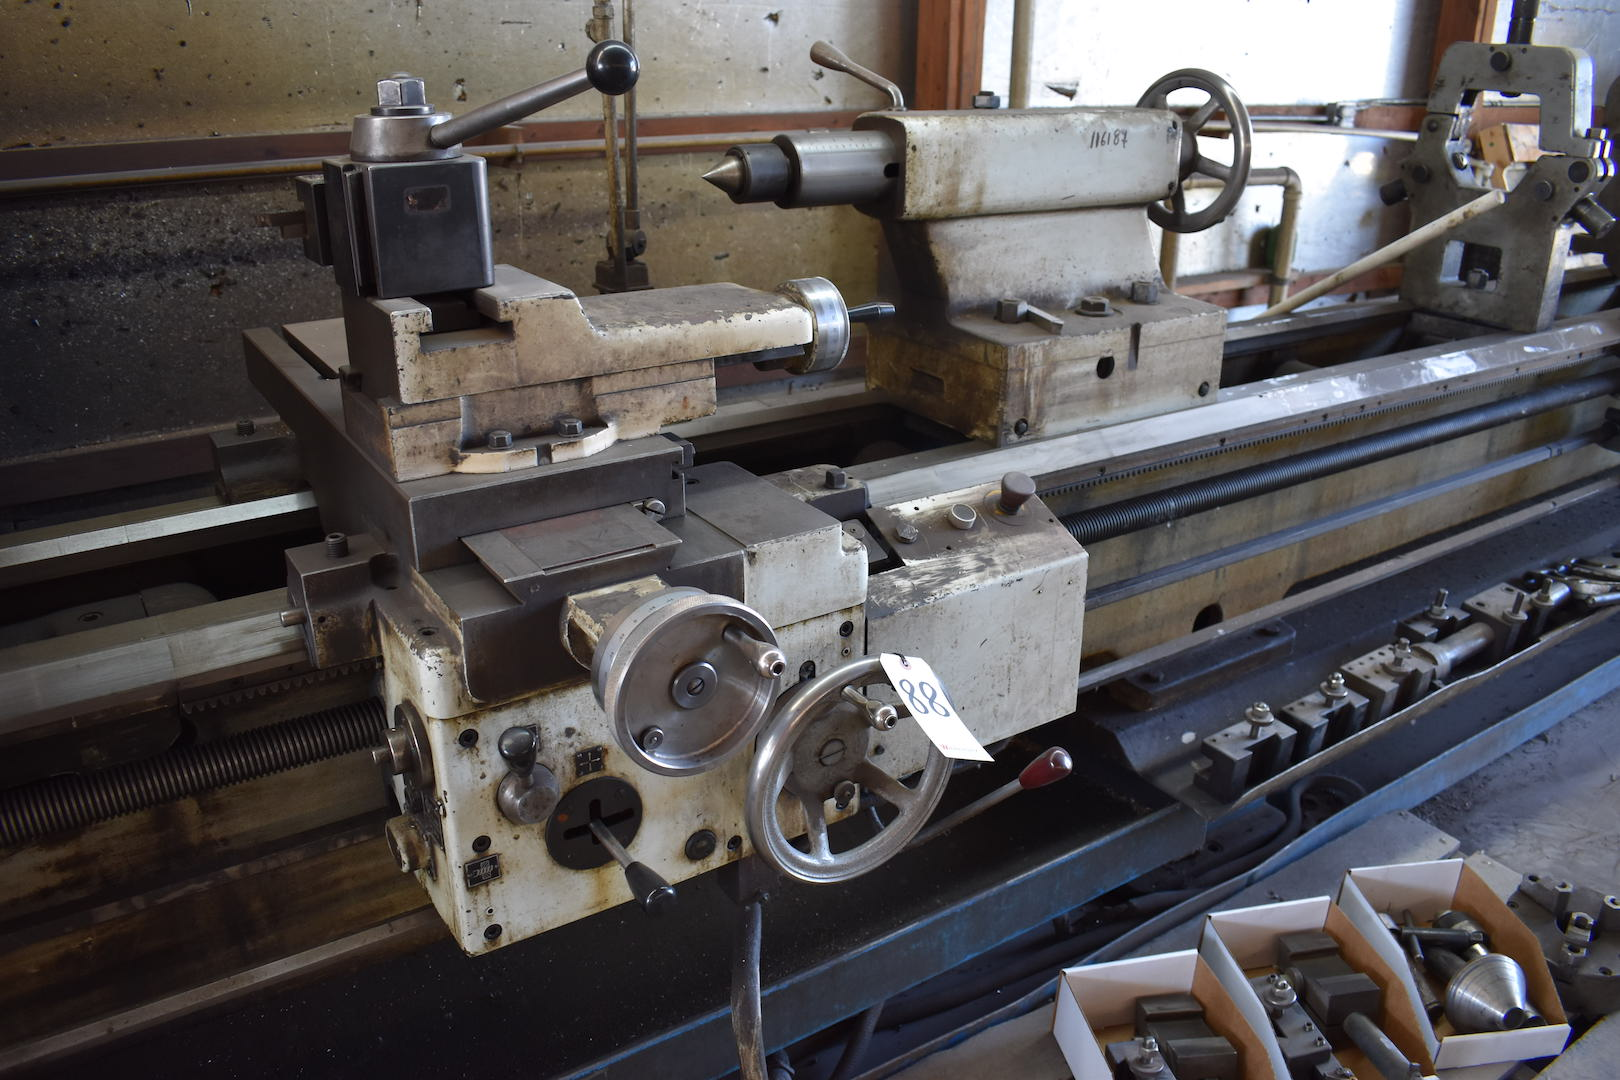 Lot 88 - Tos/Trens Trencin 28 in. x 165 in. (approx.) Model SN71C Gap Bed Engine Lathe, S/N 07 71 40 98